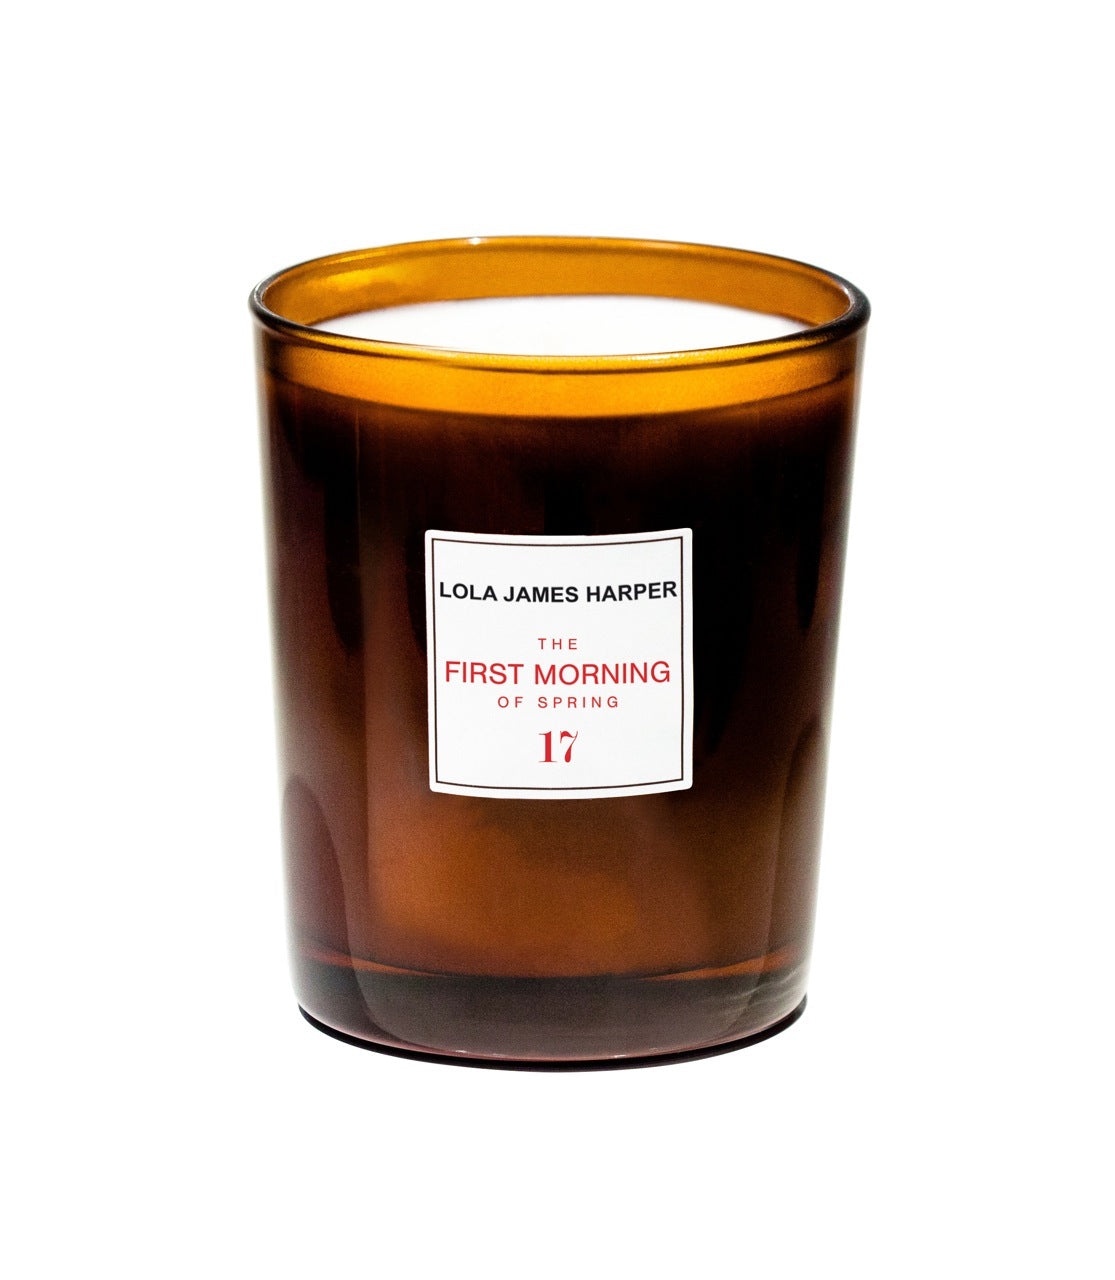 LOLA JAMES HARPER - 17 The First Morning of Spring - 190G CANDLE